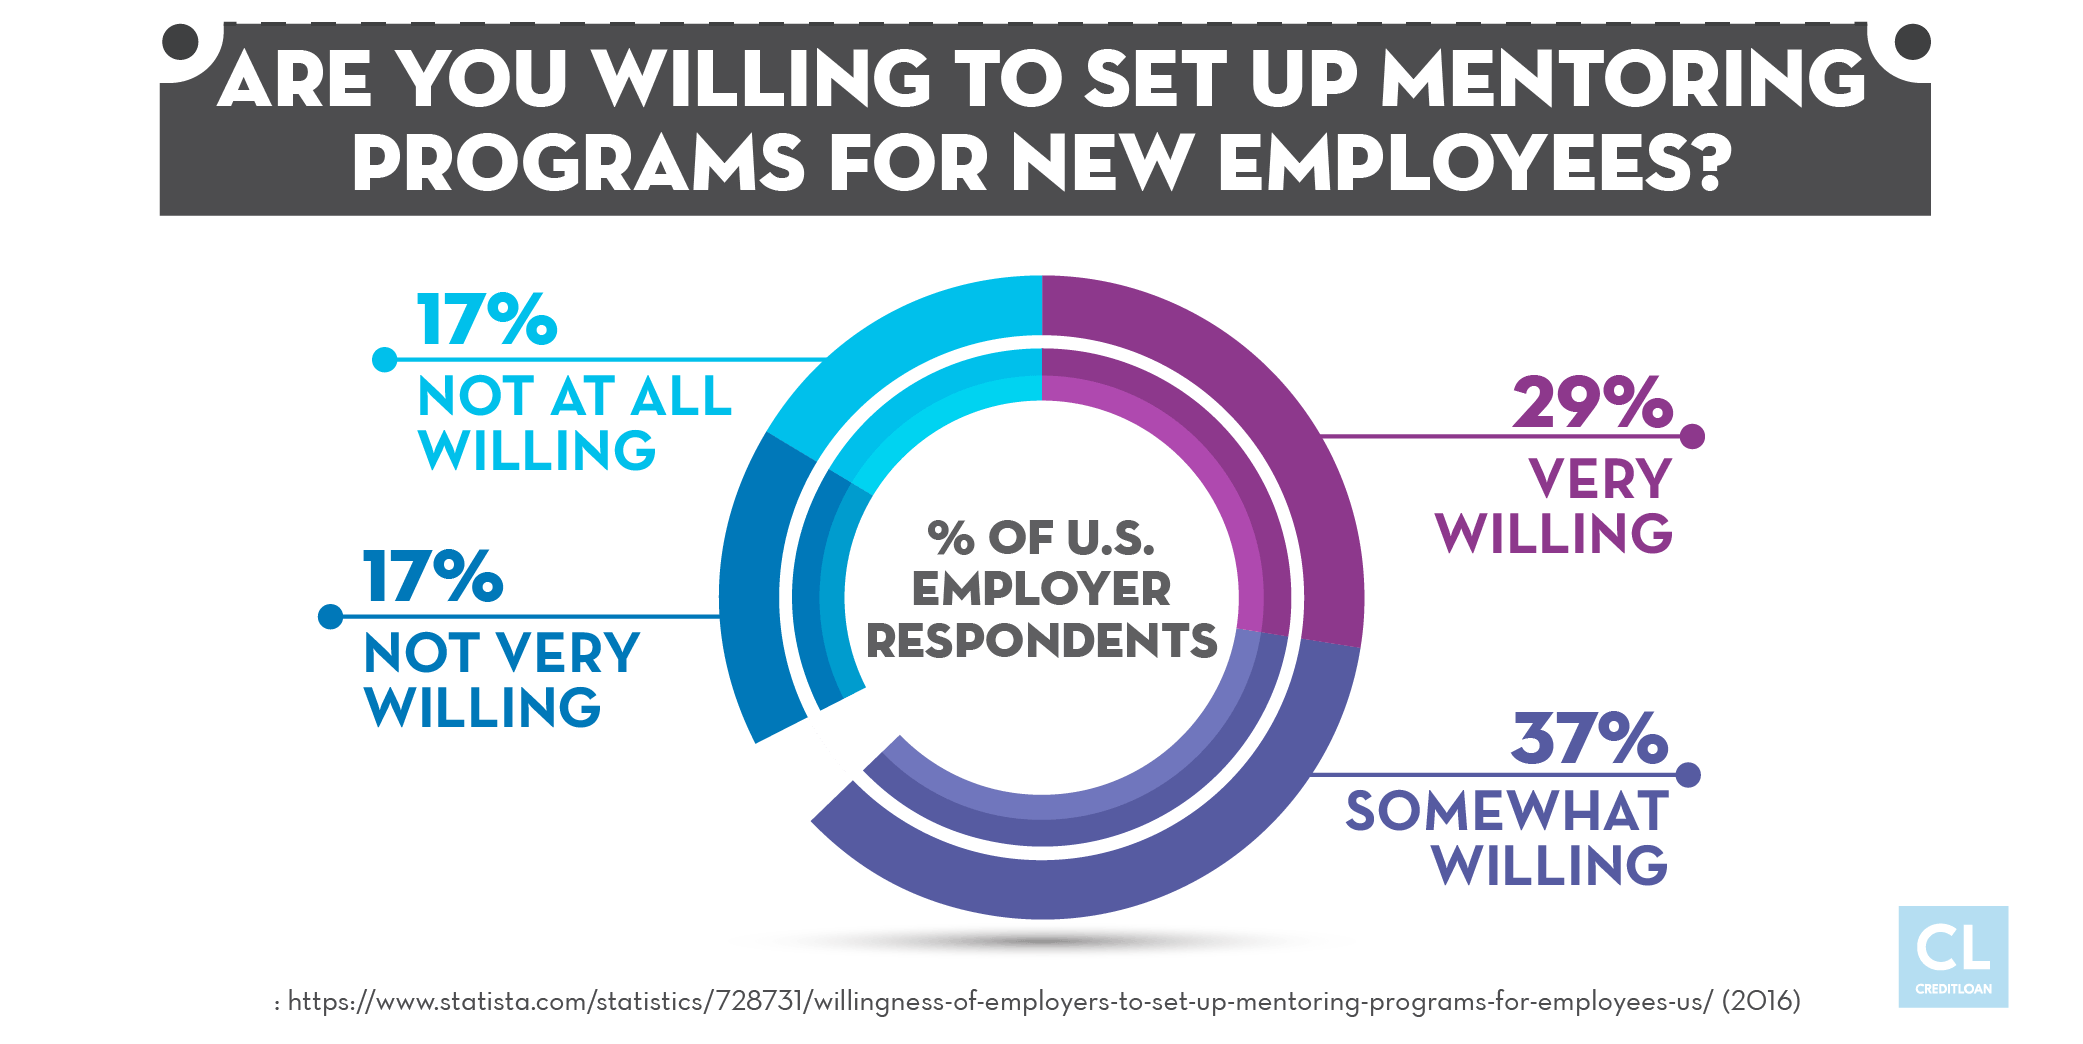 Survey: Are You Willing To Set Up Mentoring Programs For New Employees?